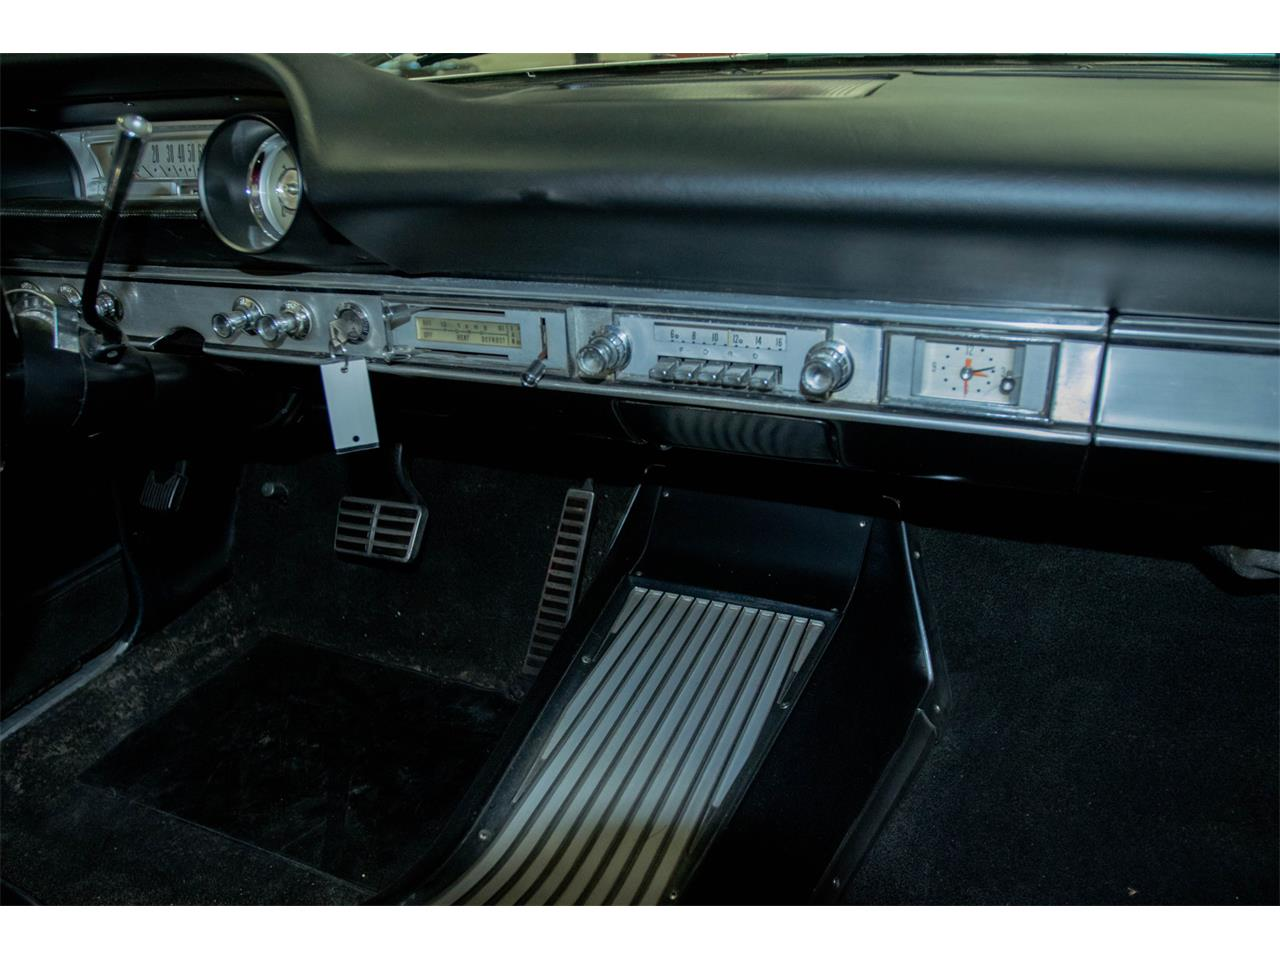 Large Picture of 1964 Galaxie 500 located in Fairfield California - $37,500.00 - JVOQ